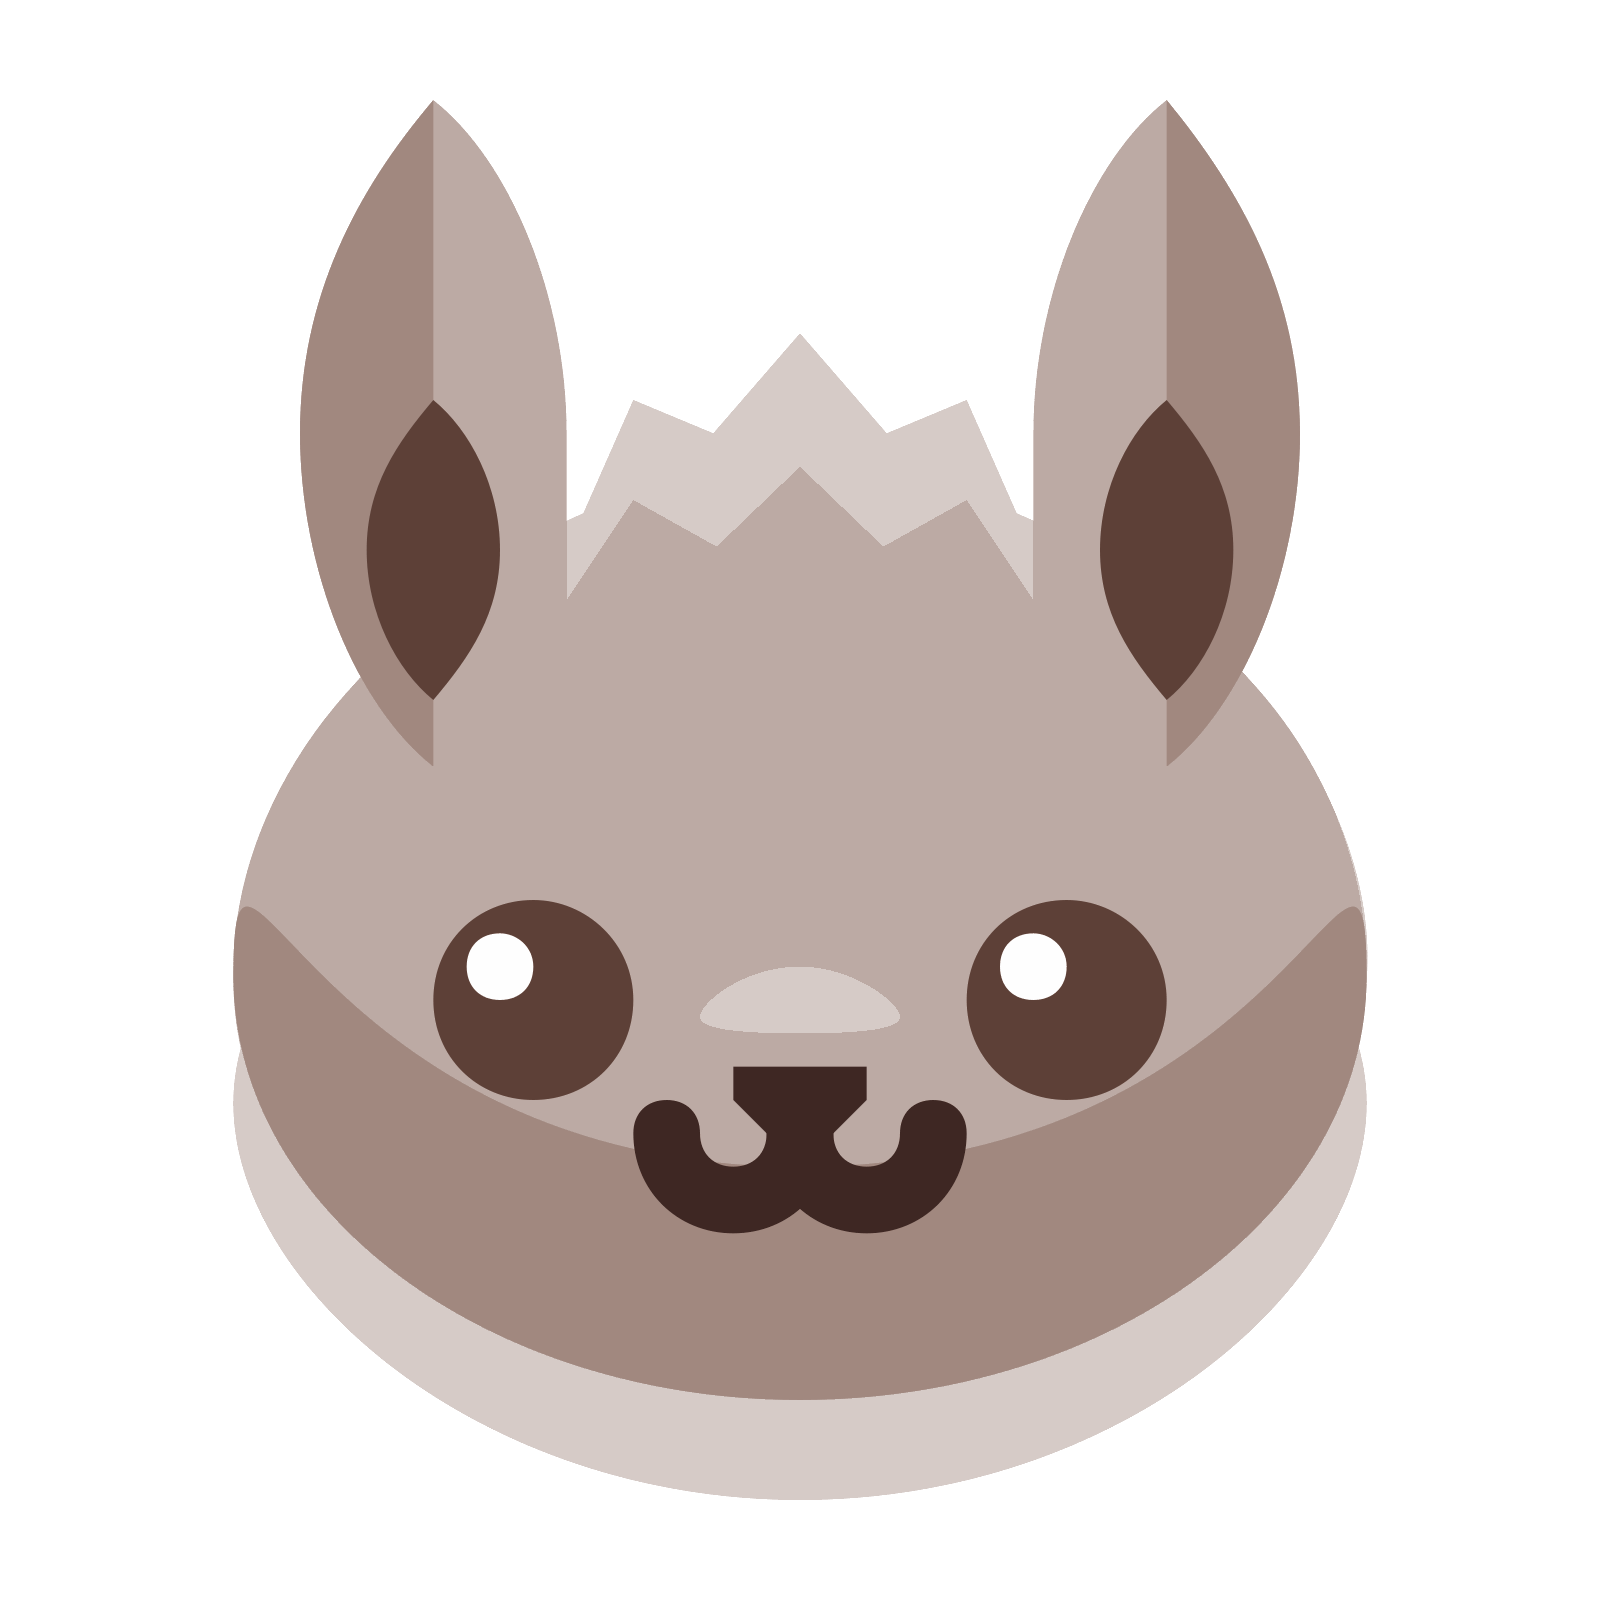 Eevee vector. Icon free download png